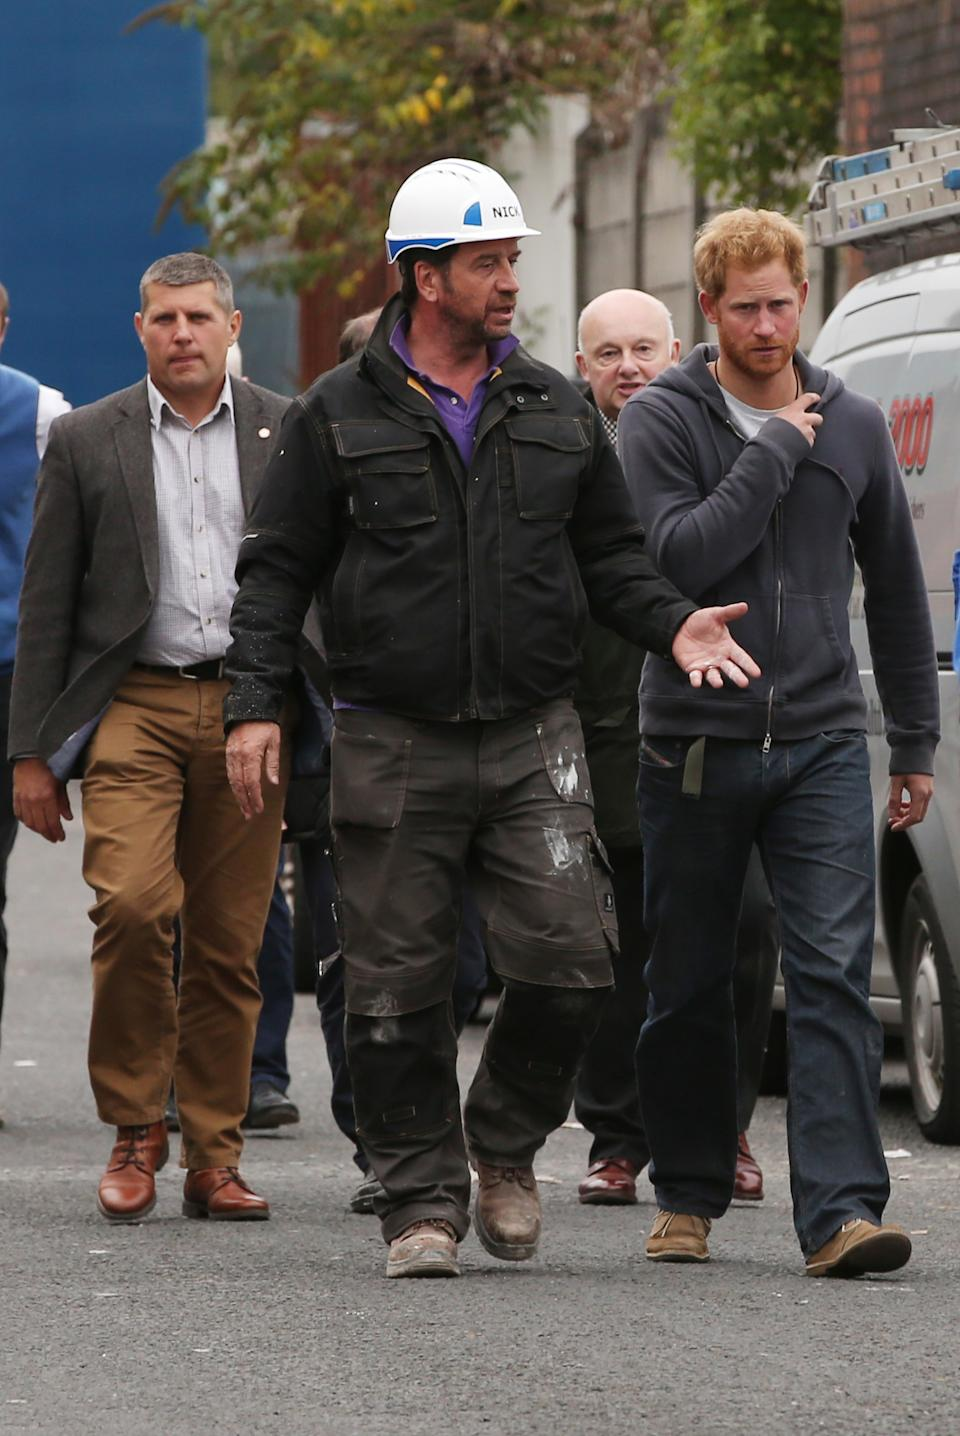 Prince Harry leaves with the show's host Nick Knowles after a visit to the BBC's DIY SOS Team for The Big Build: Veteran's Special at a street in Manchester.